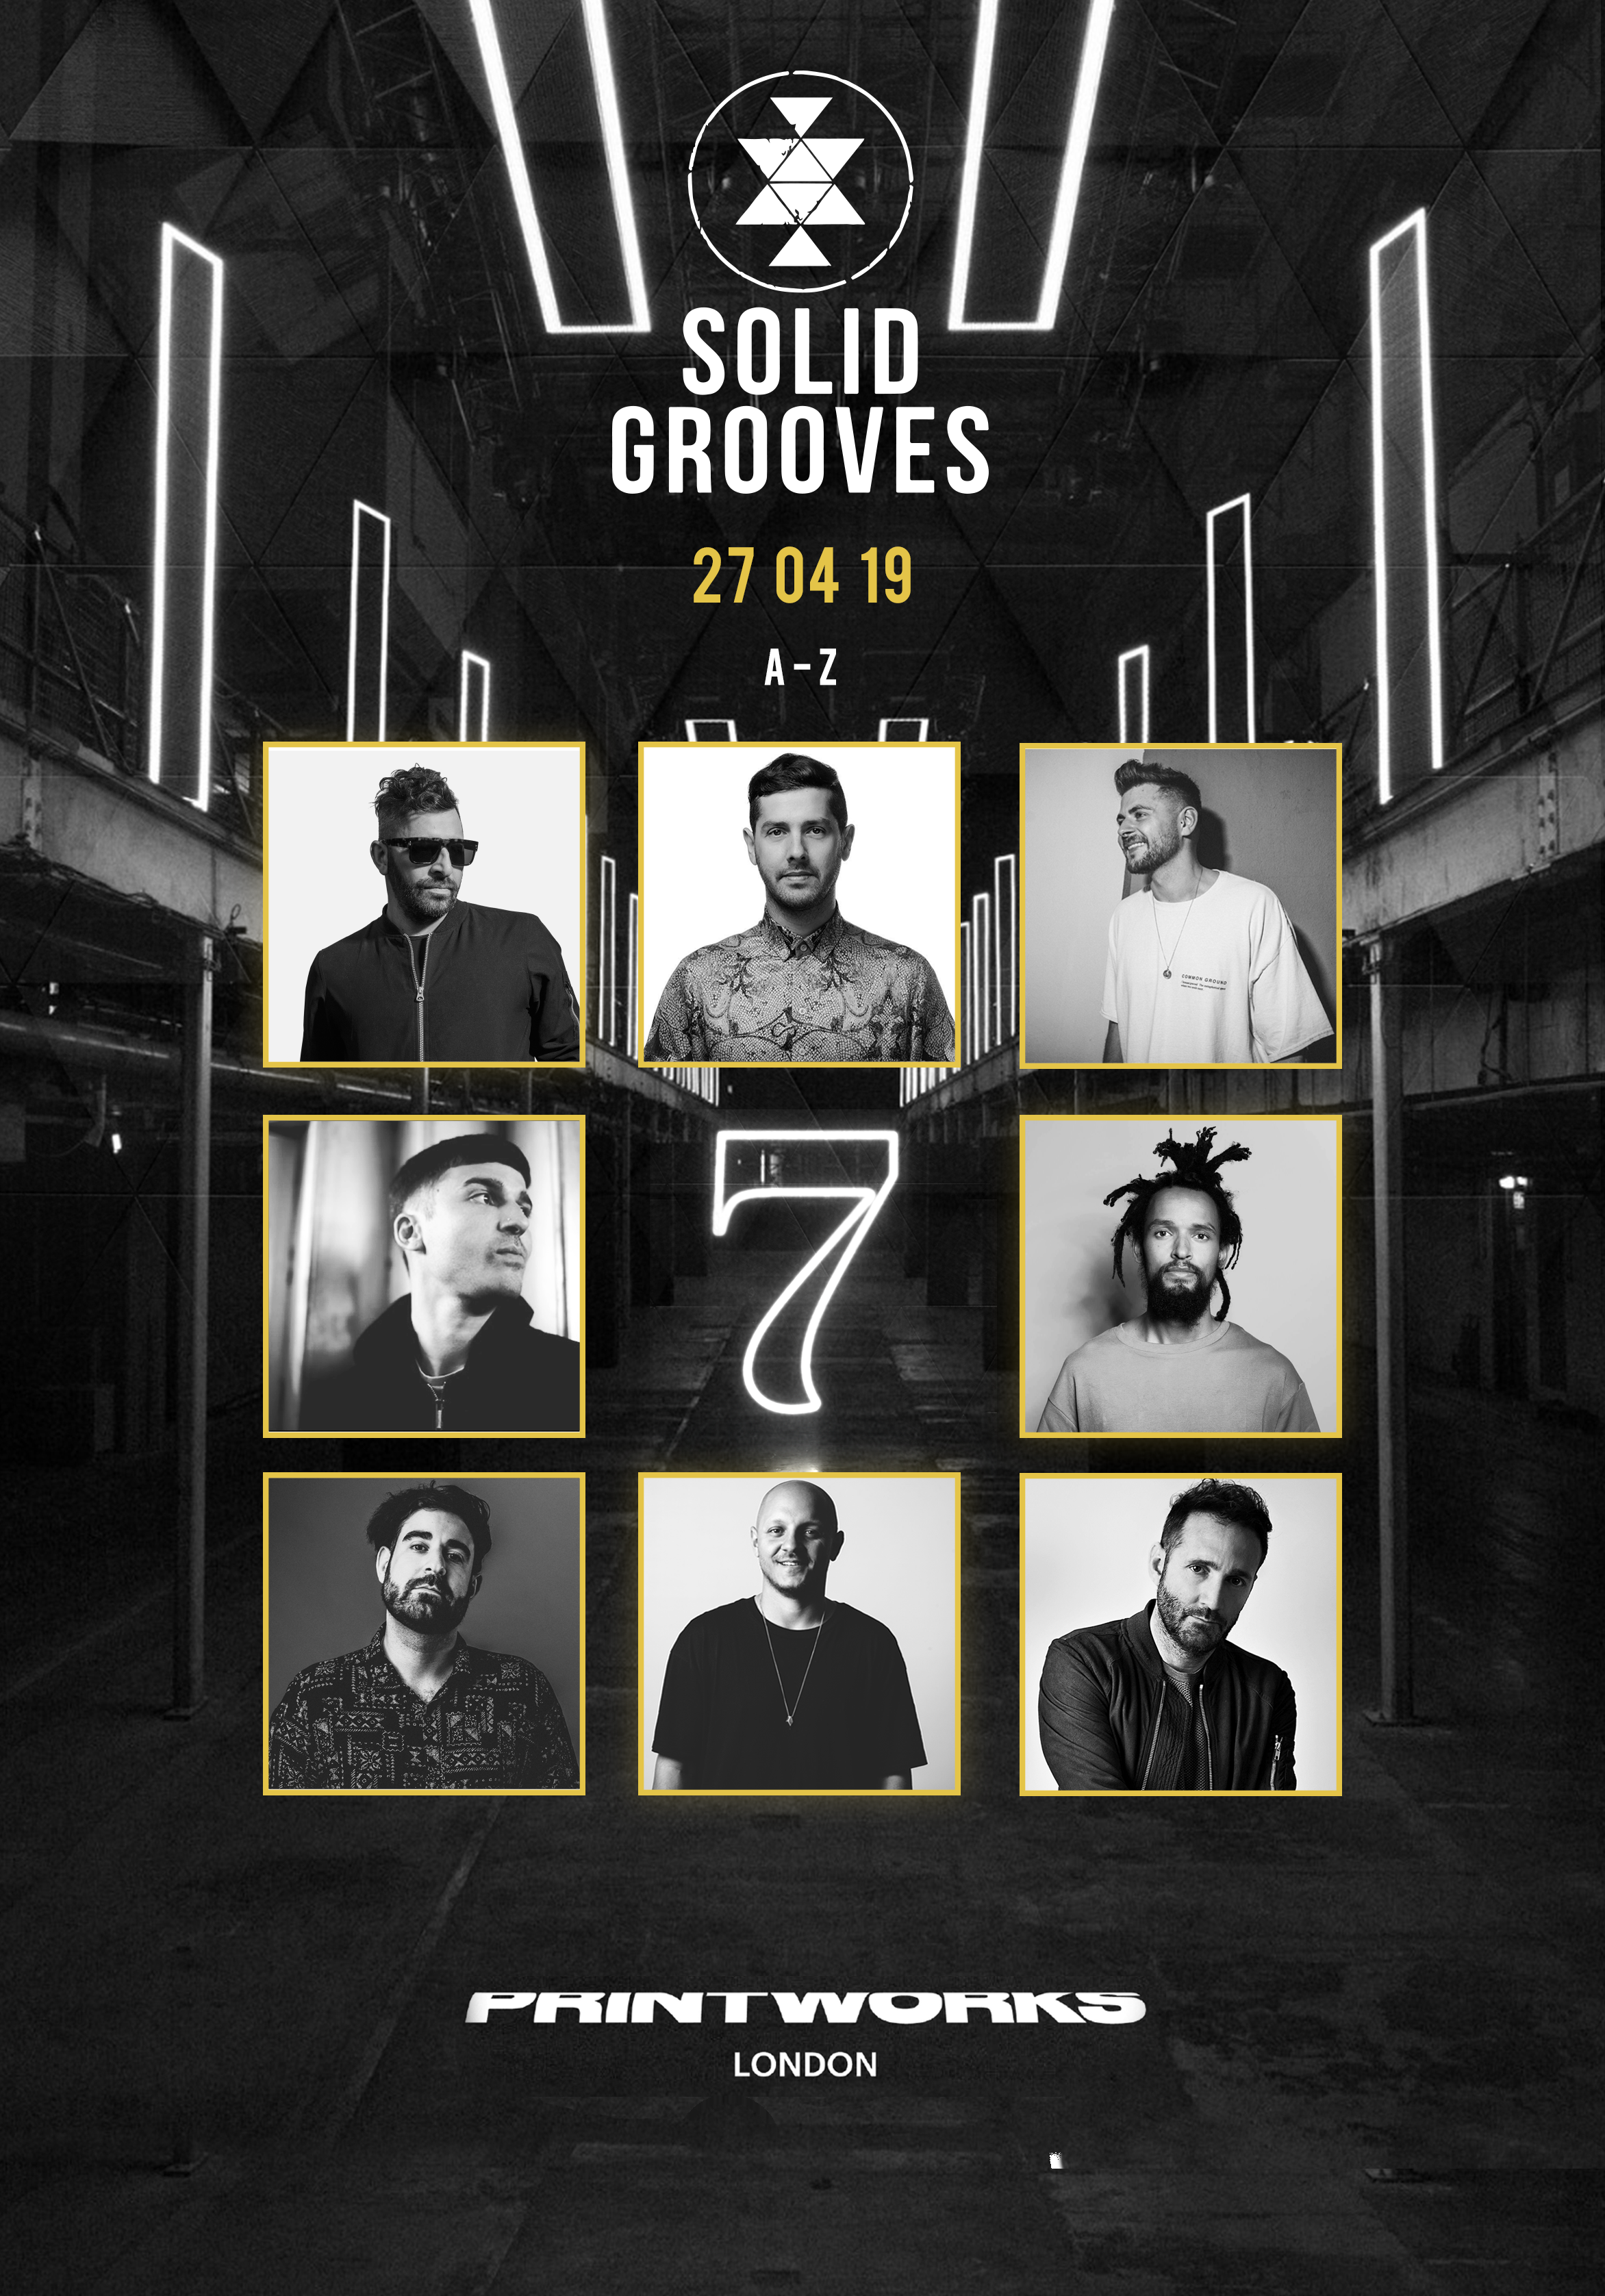 Solid Grooves Lineup